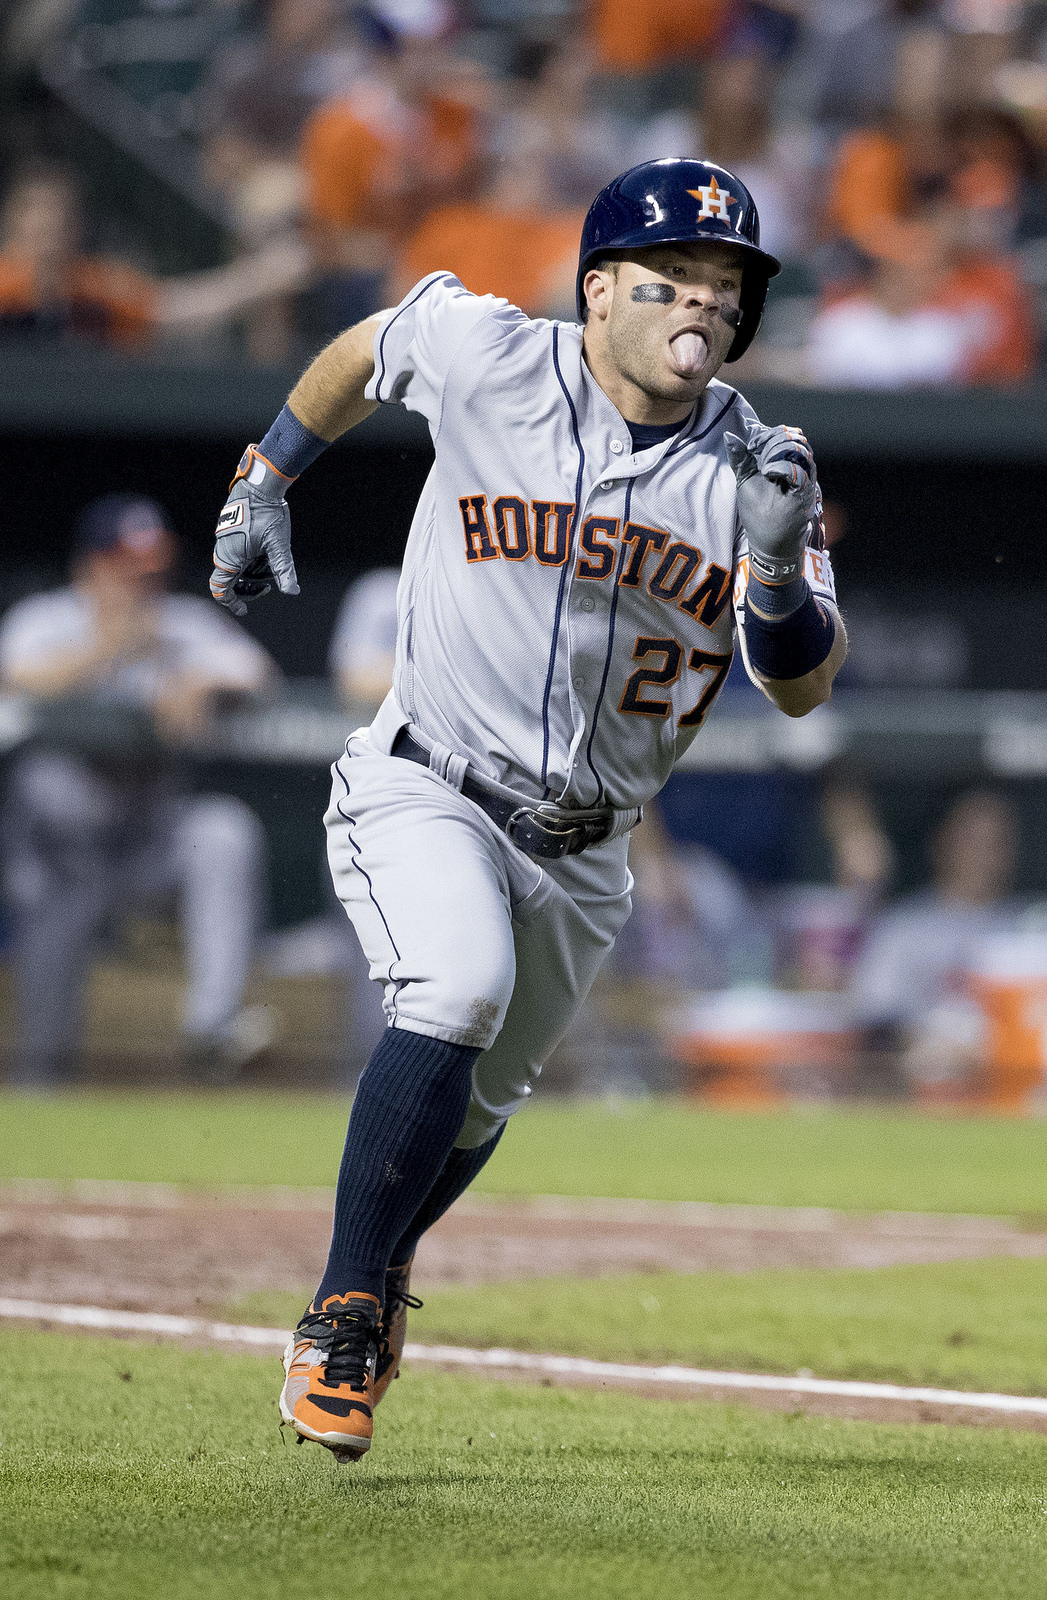 #2 ranked second baseman, Jose Altuve